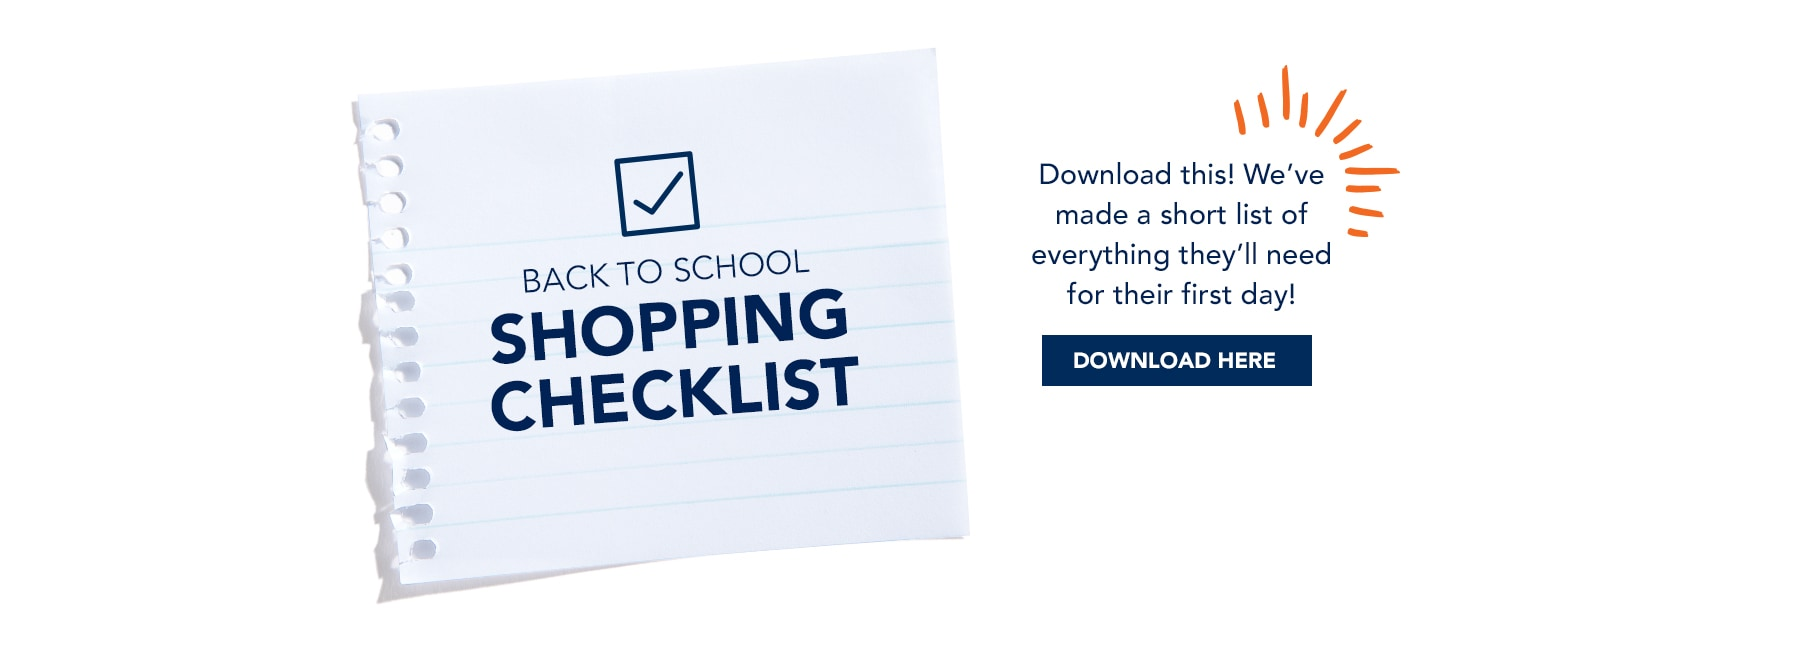 Back to School Shopping Checklist: Download this! We've made a short list of everything they'll need for their first day! Download Here.